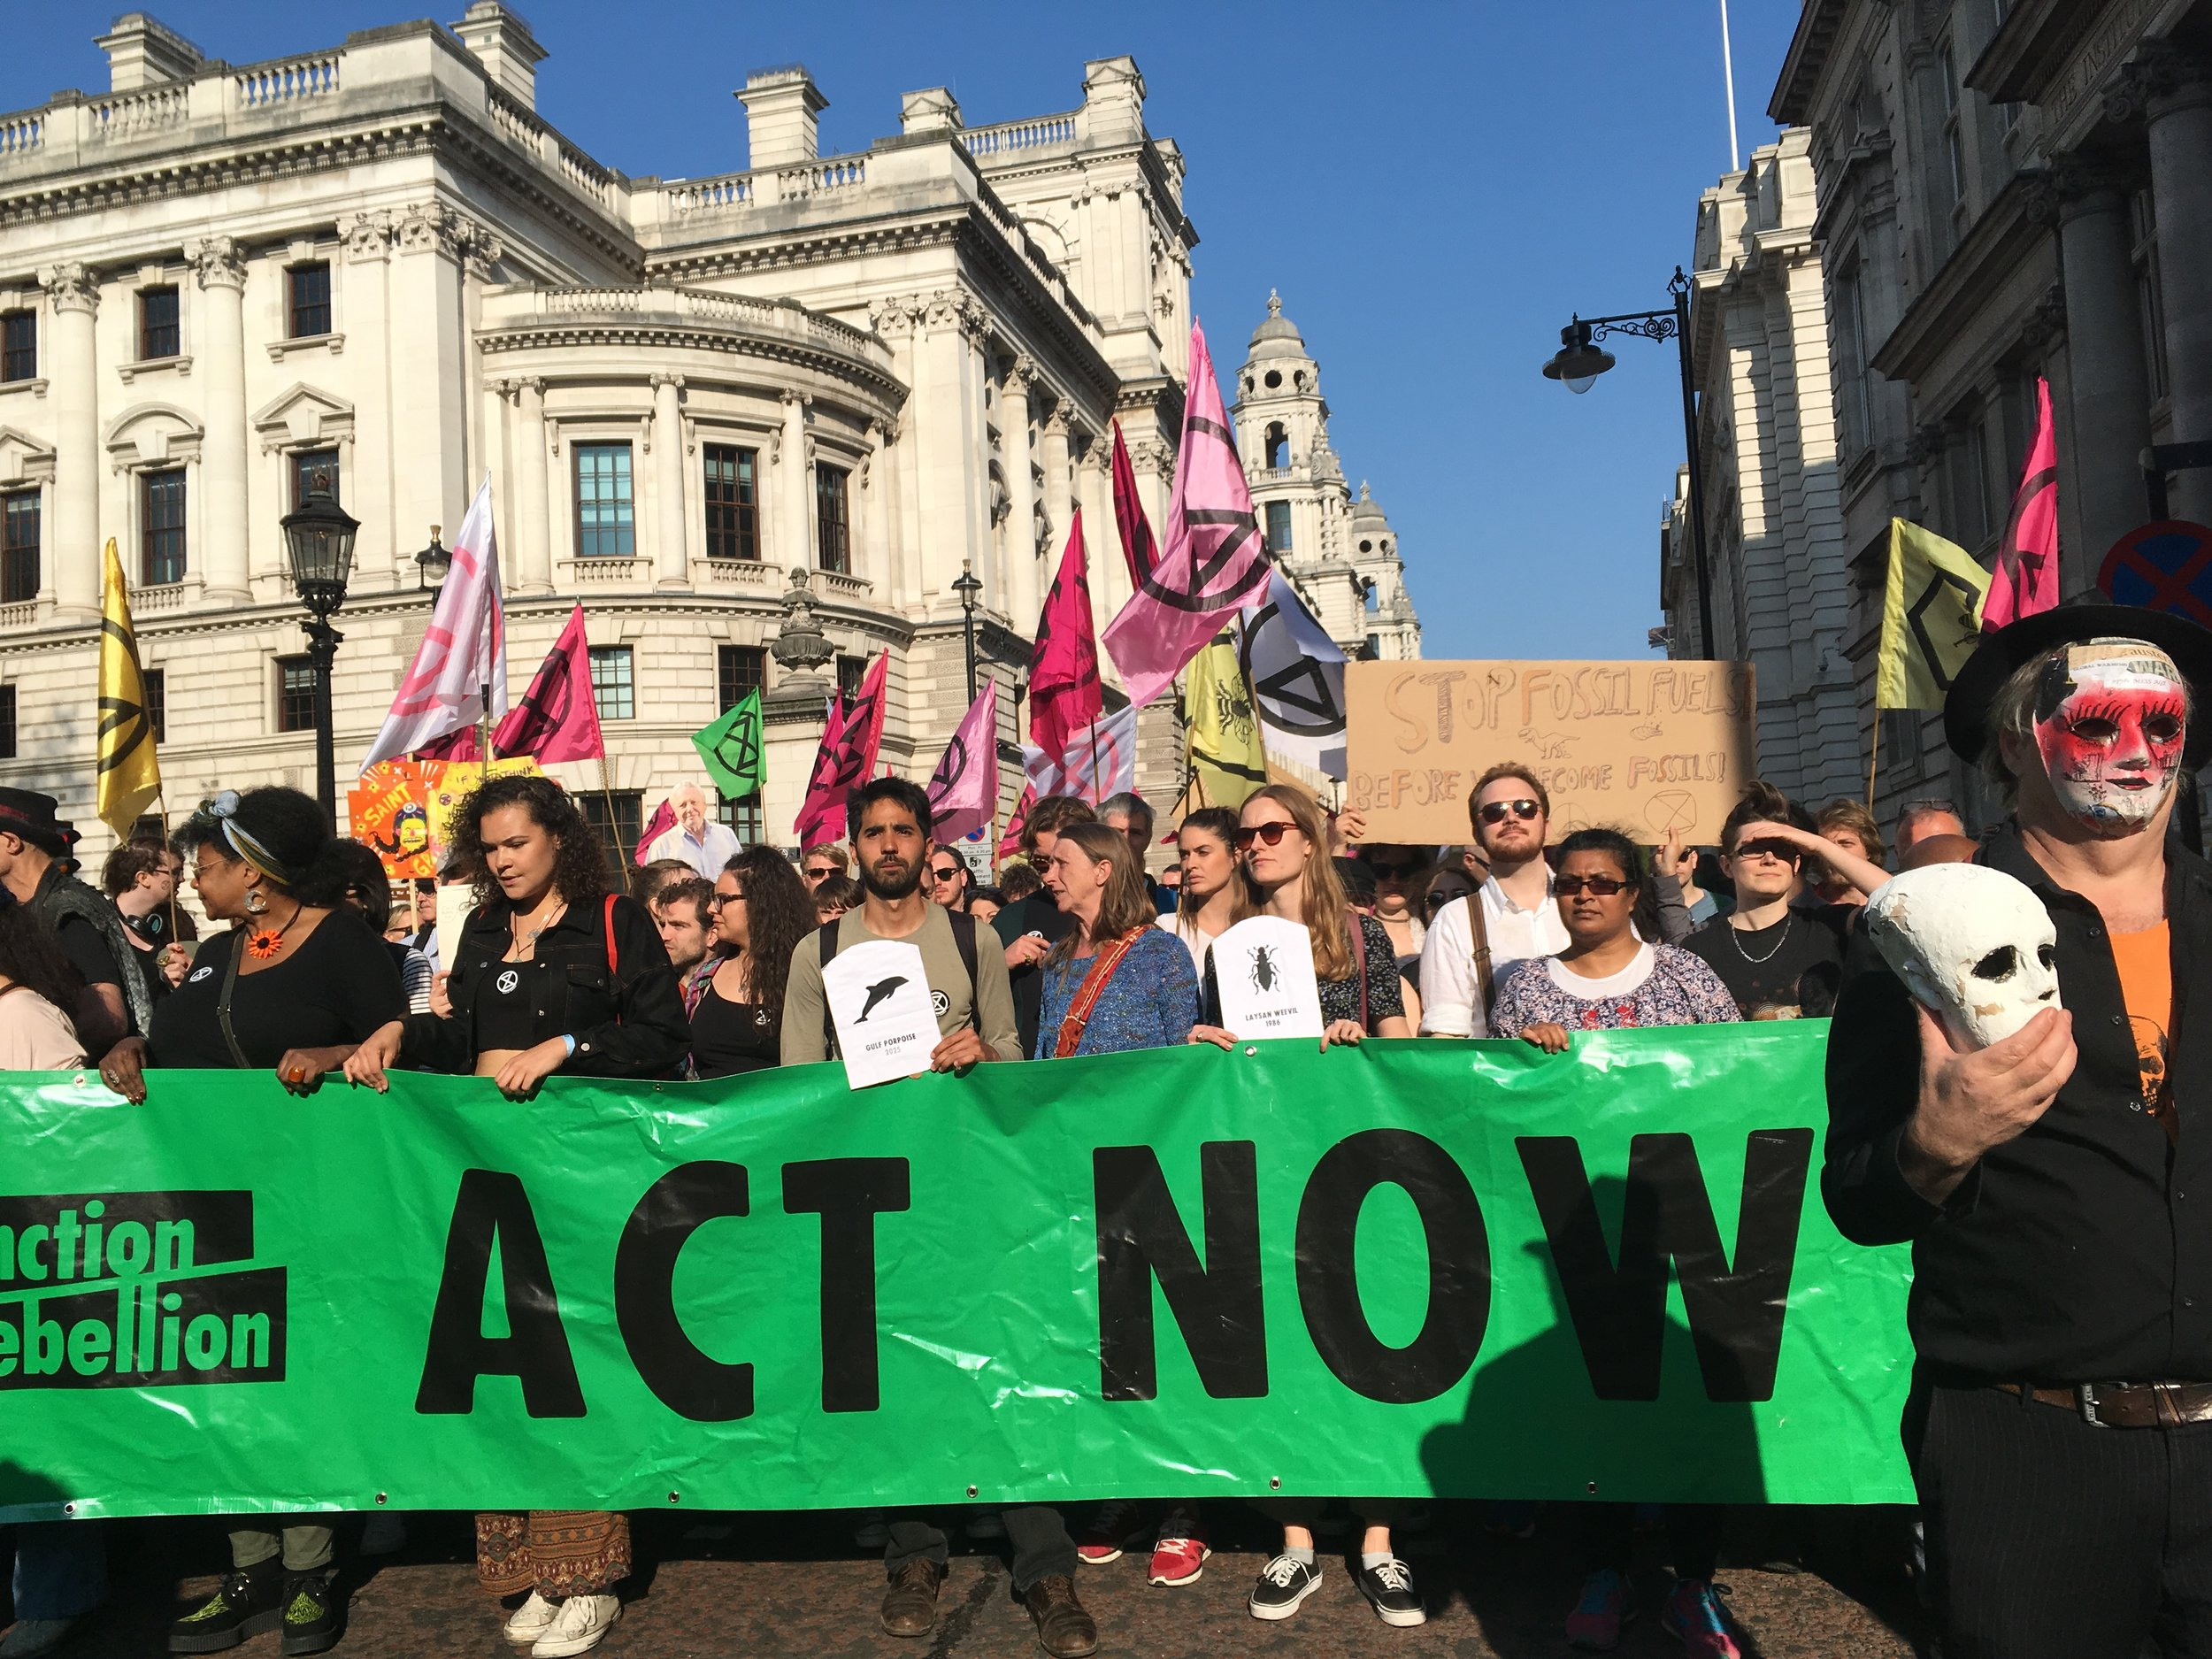 Extinction Rebellion Protests in London April 2019. Photo credit: Geraldine Wharry